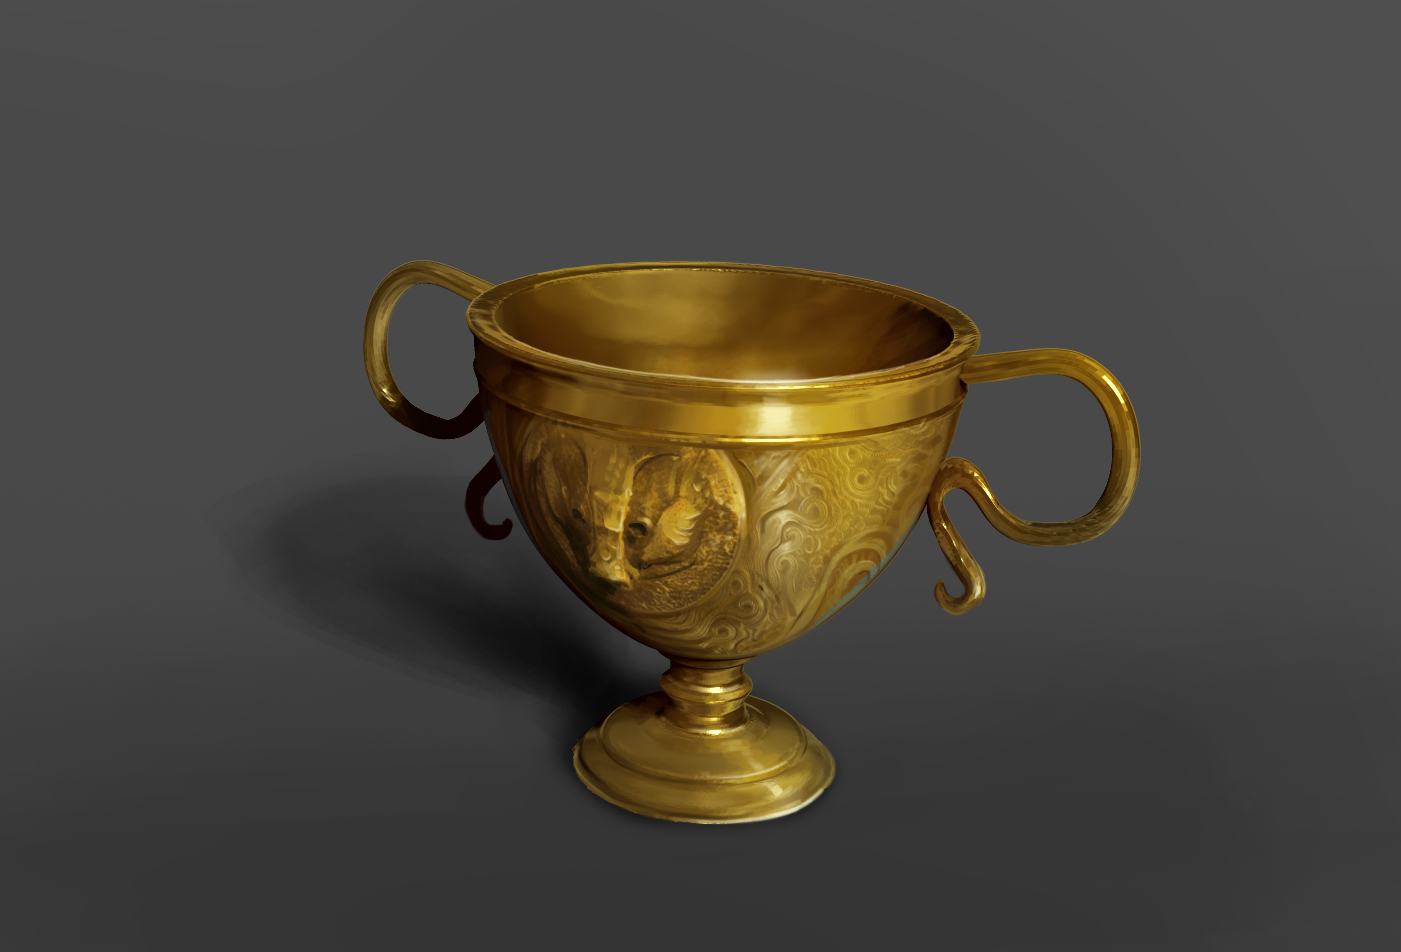 Illustration of Helga Hufflepuff's cup